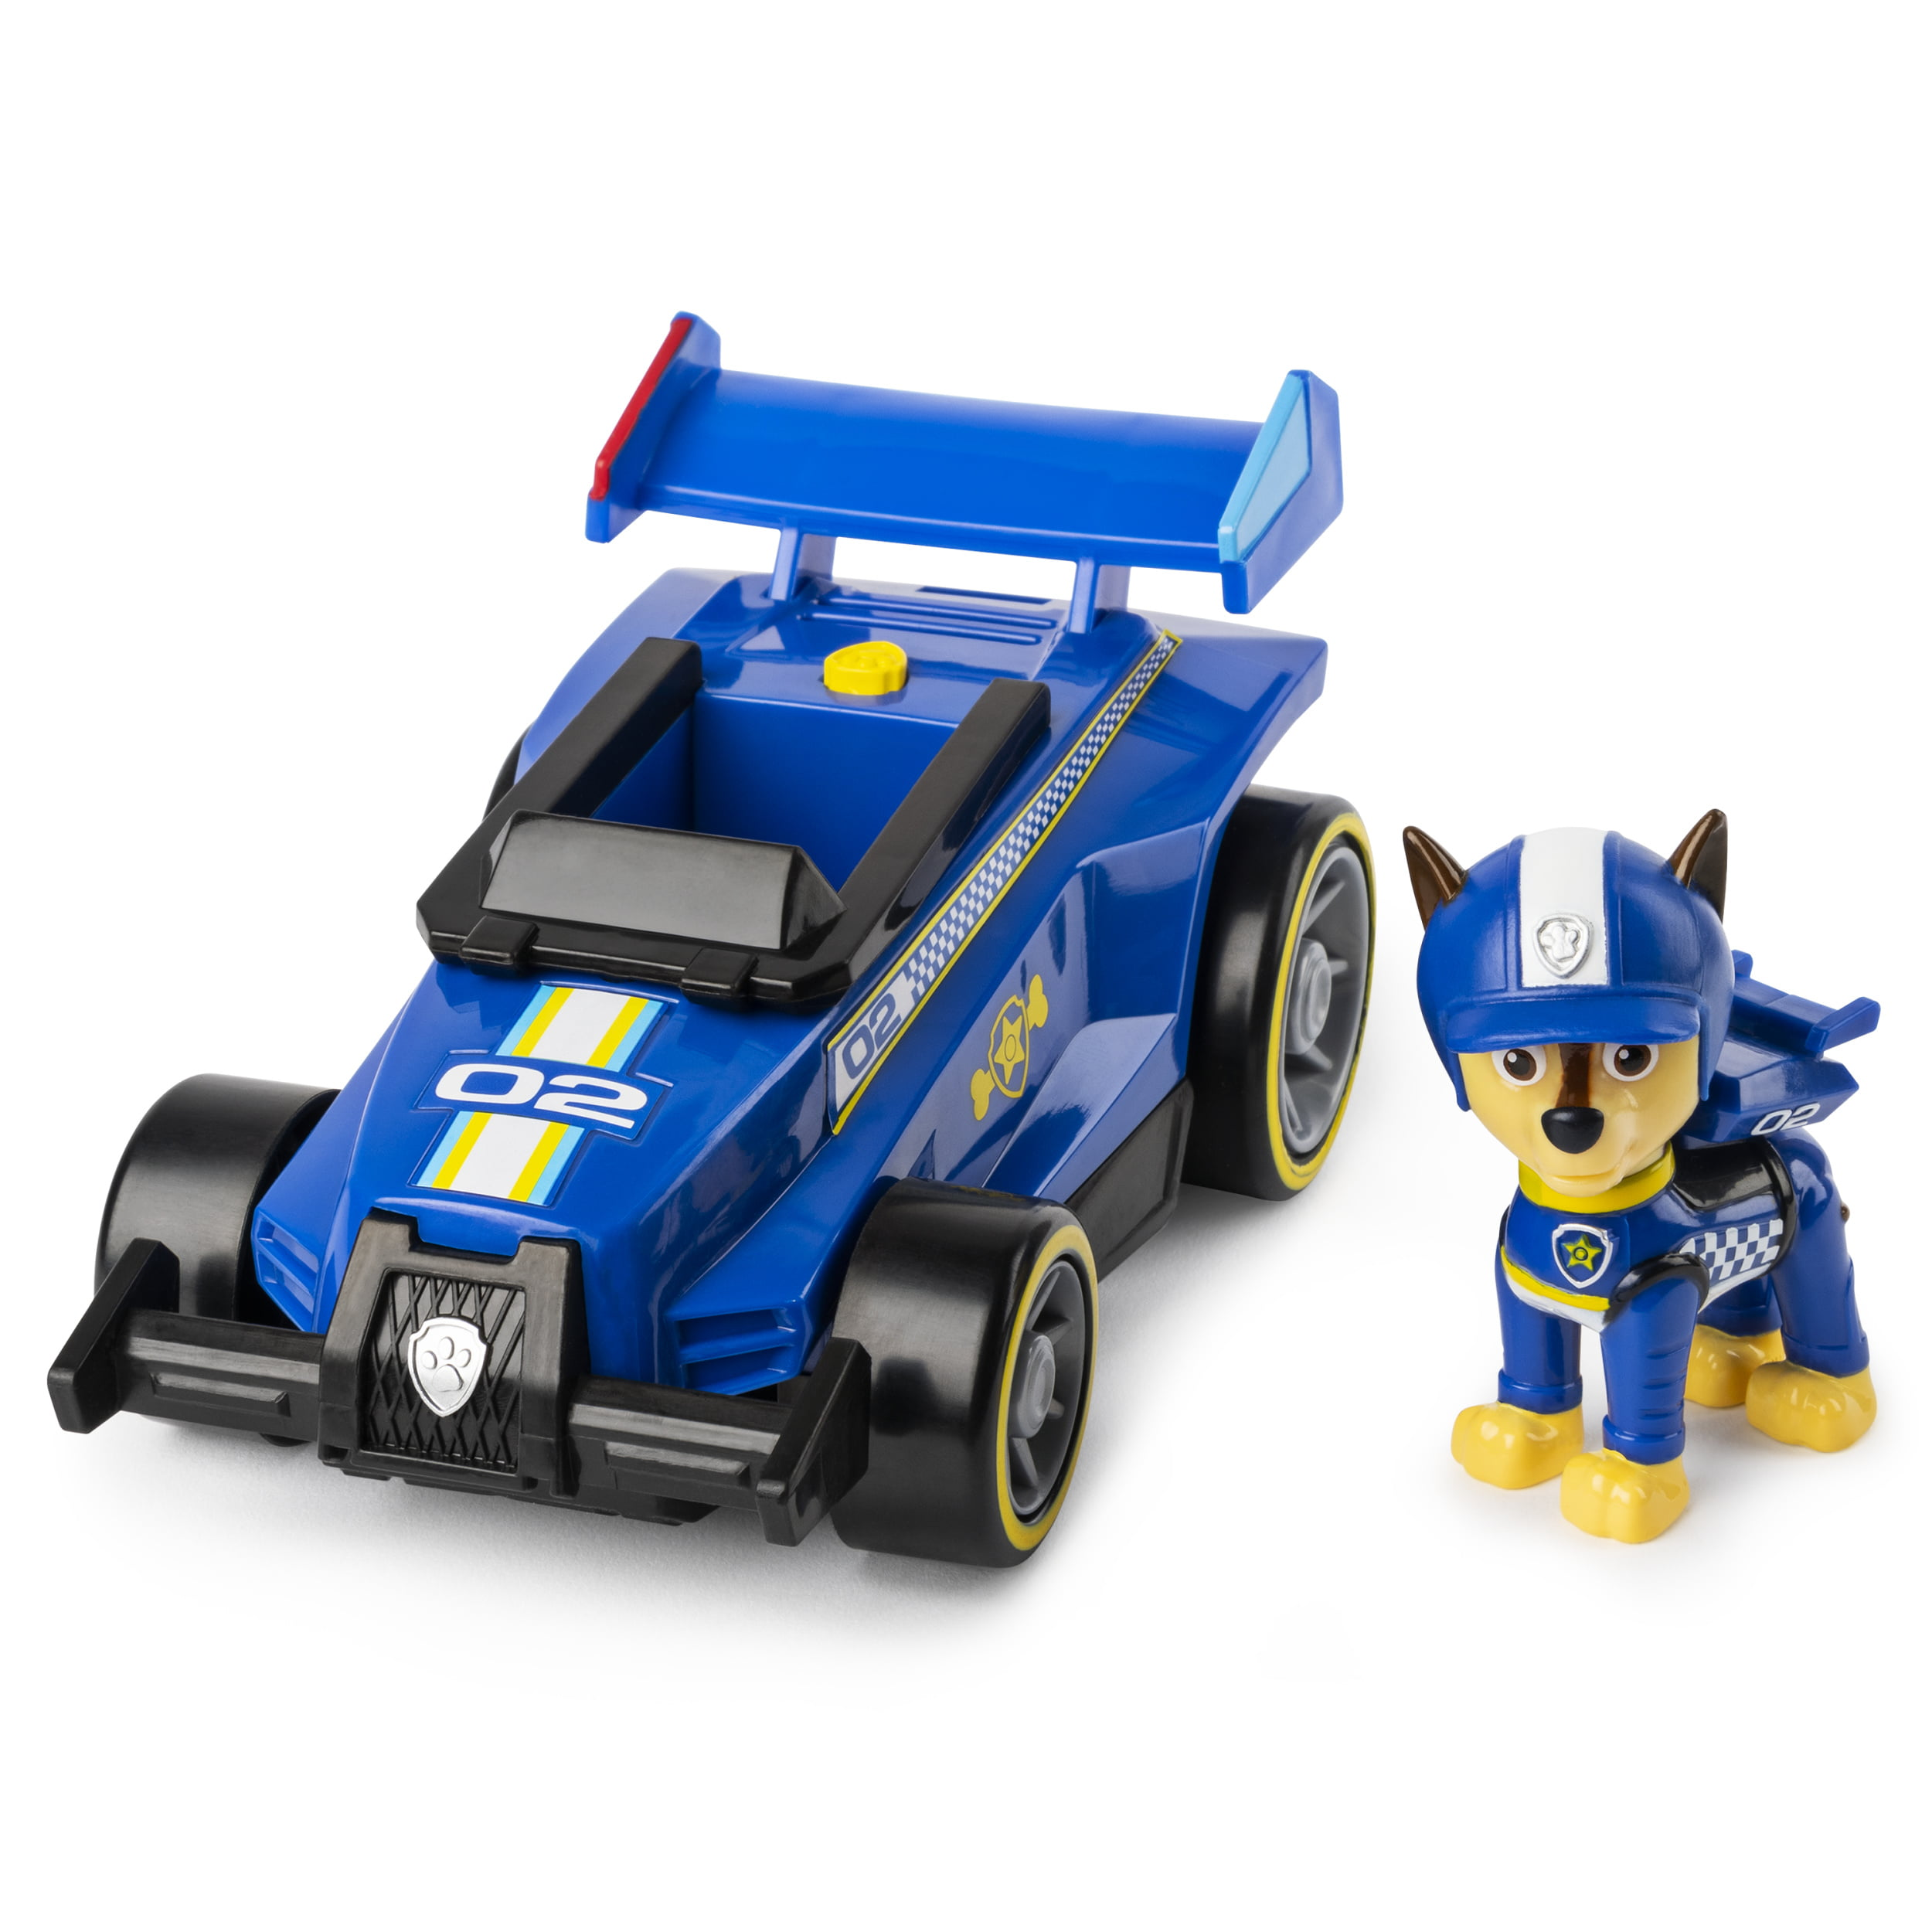 PAW Patrol, Ready, Race, Rescue Chases Race & Go Deluxe Vehicle with Sounds, for Kids Aged 3 and Up